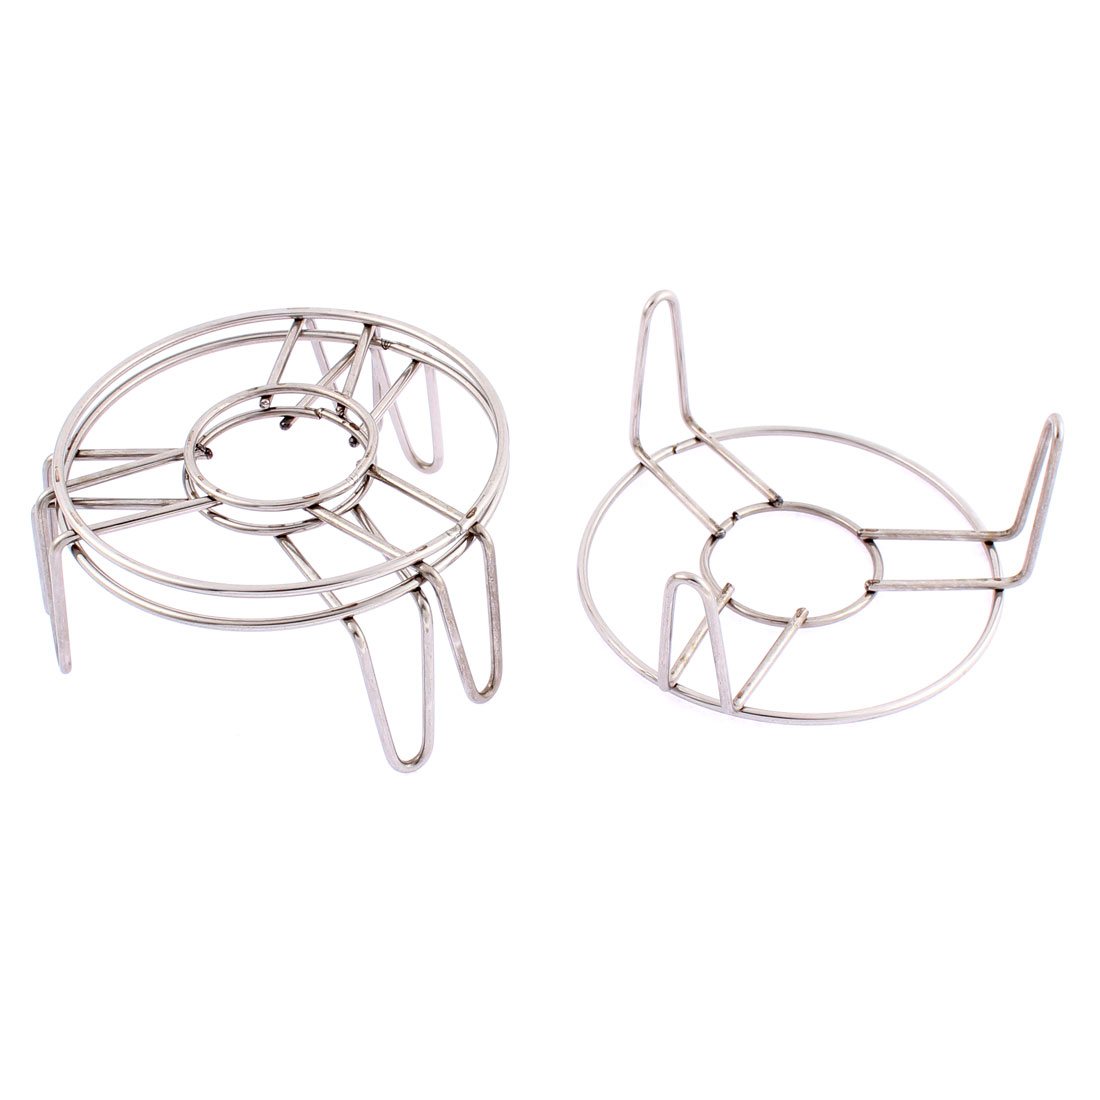 Home Stainless Steel Food Steaming Rack Stand 4 Inch x 2 Inch 3 Pcs